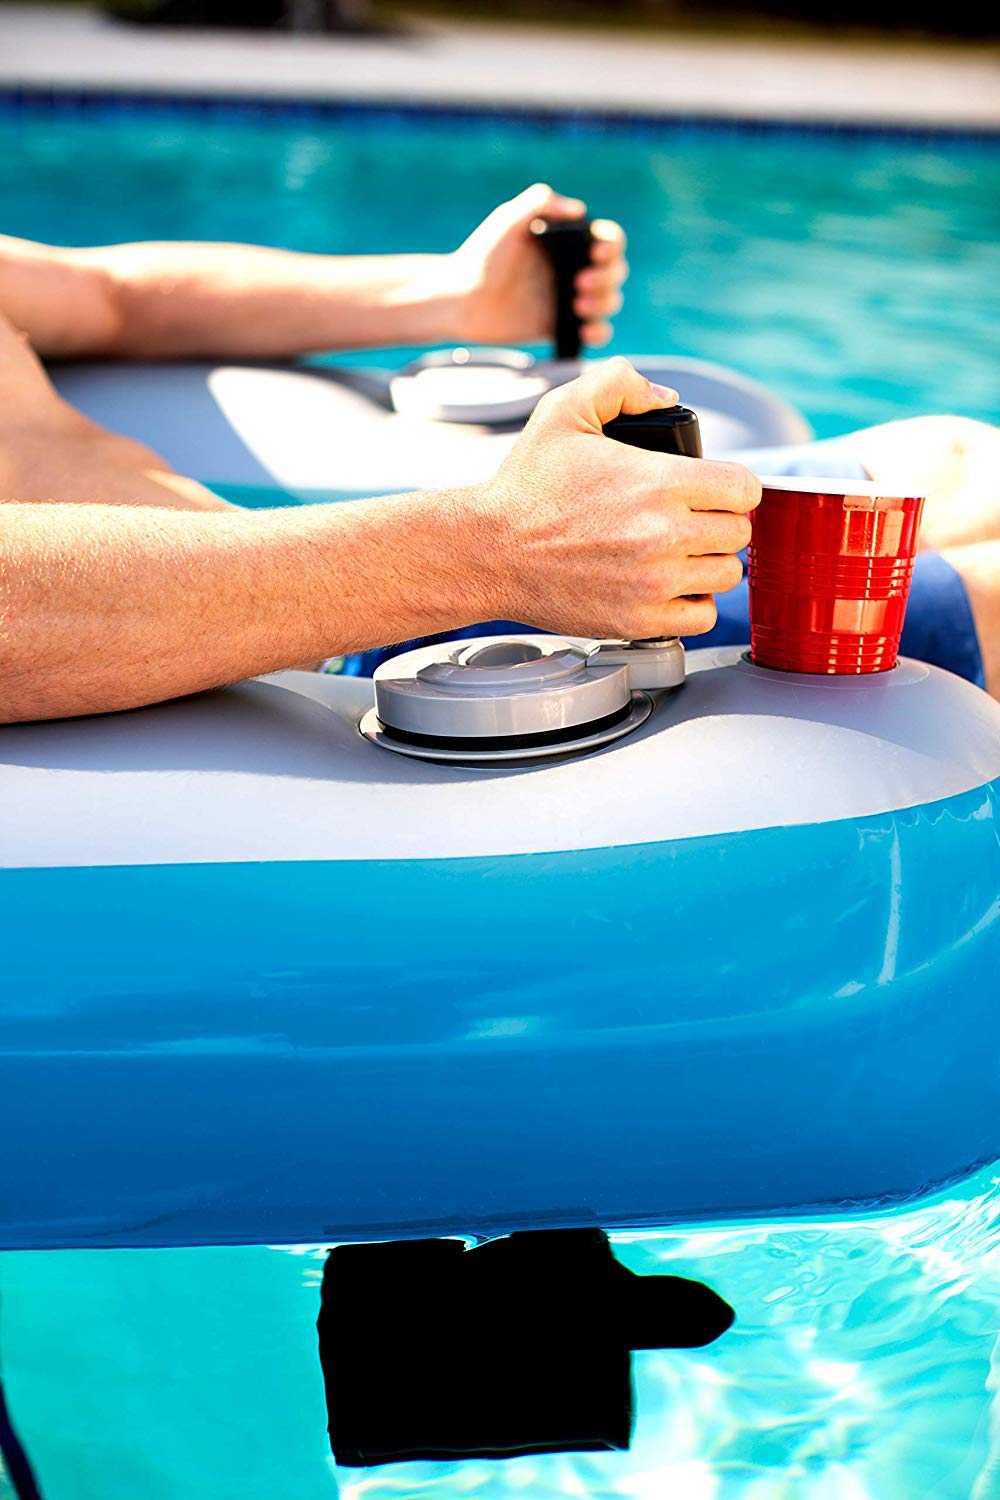 motorized pool float with joy stick controllers